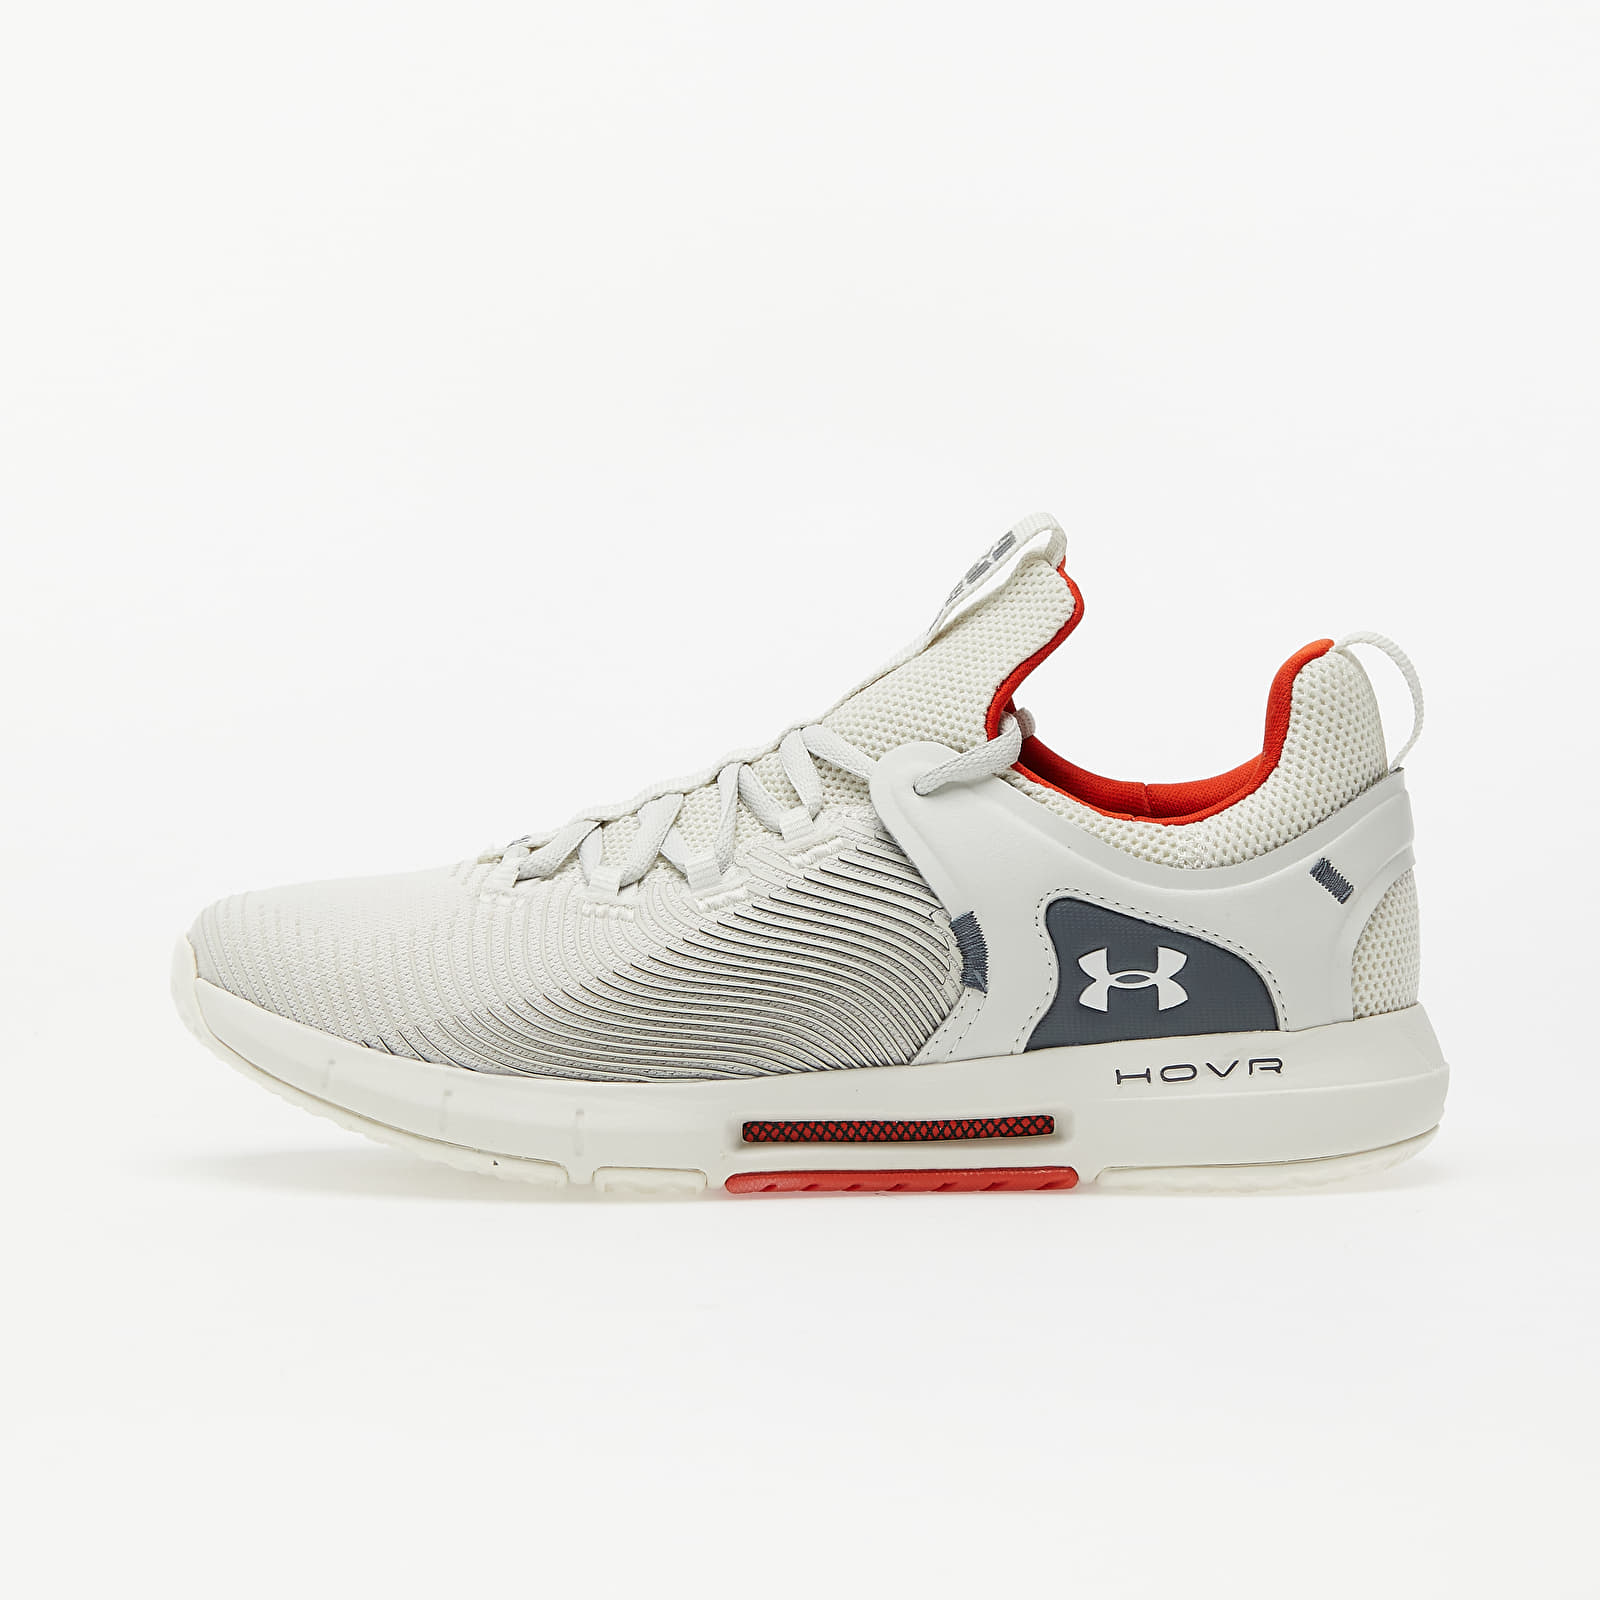 Under Armour HOVR Rise 2 Summit White 3023009-100